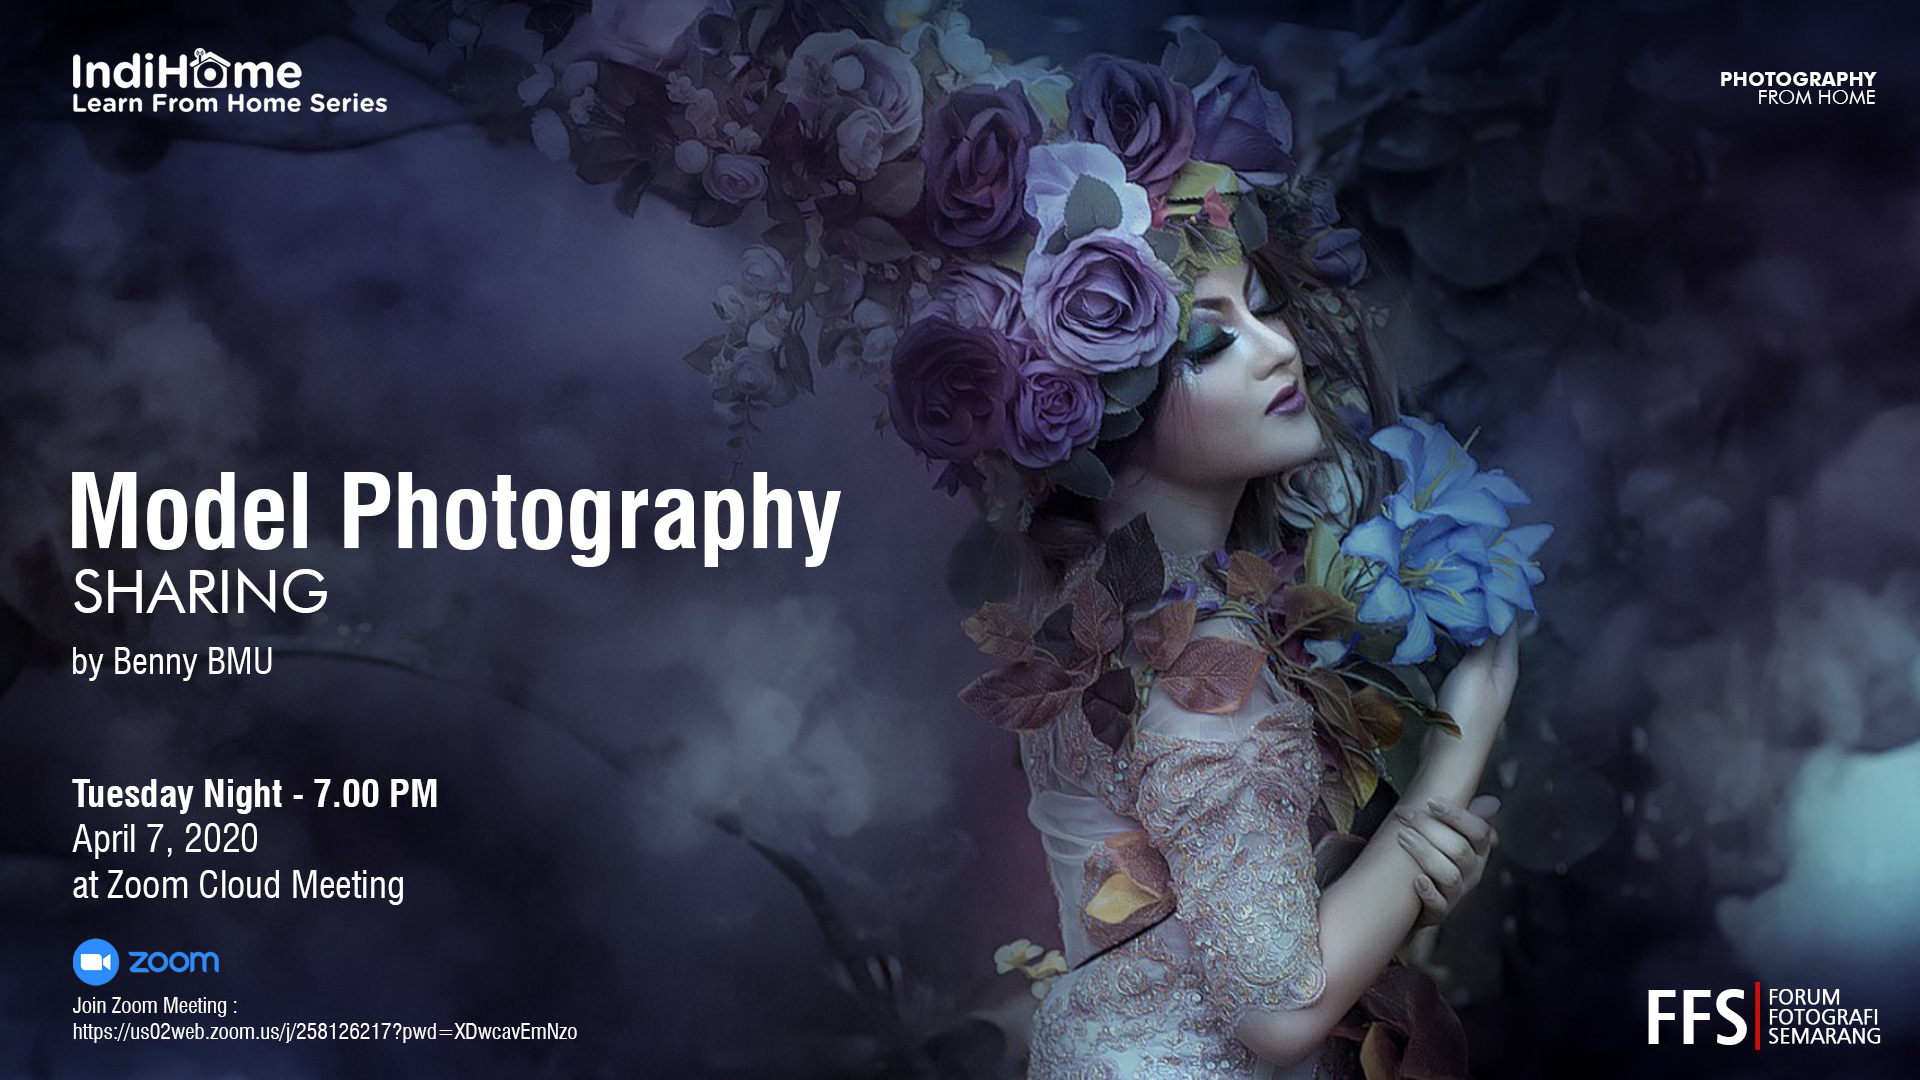 WORKSHOP – PHOTOGRAPHY FROM HOME